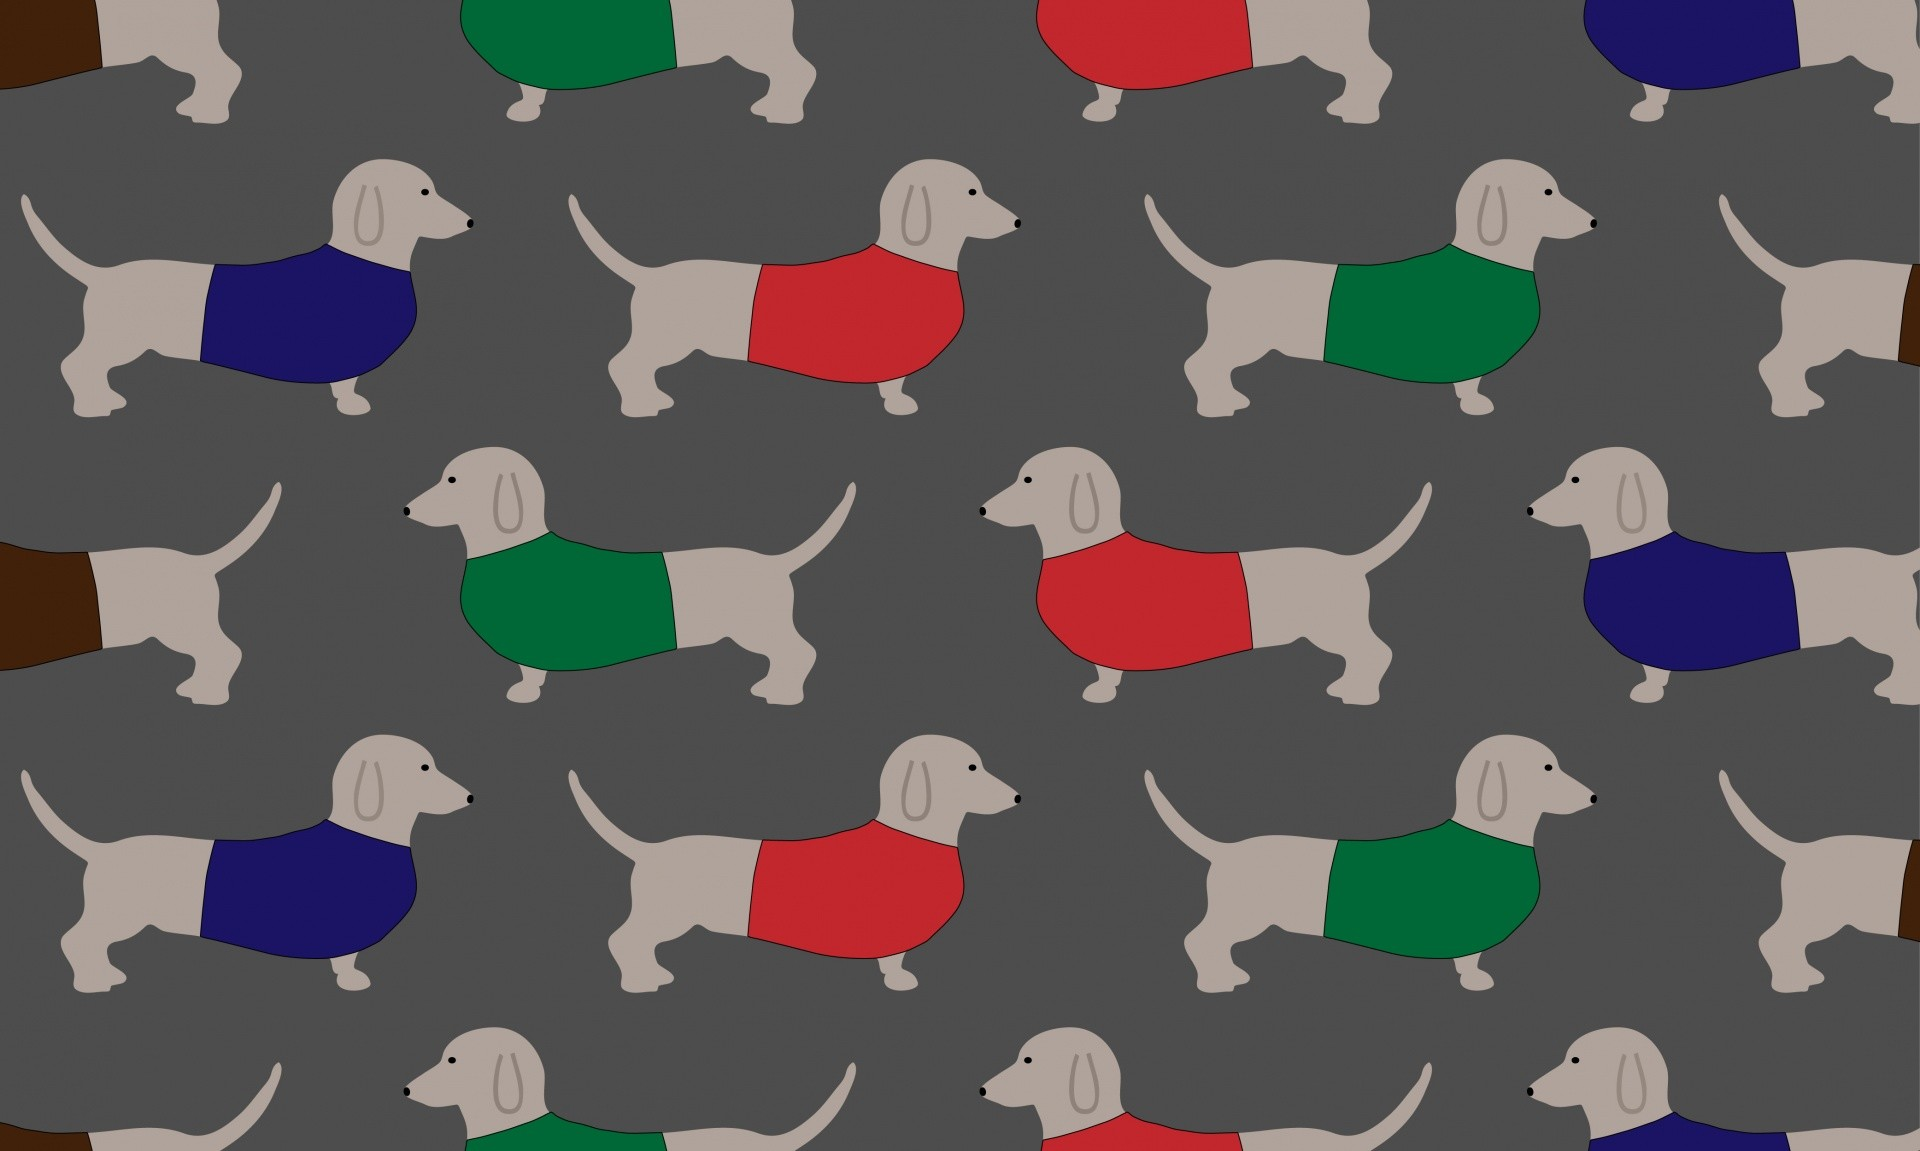 1920x1151 Dachshund Dog Wallpaper Pattern